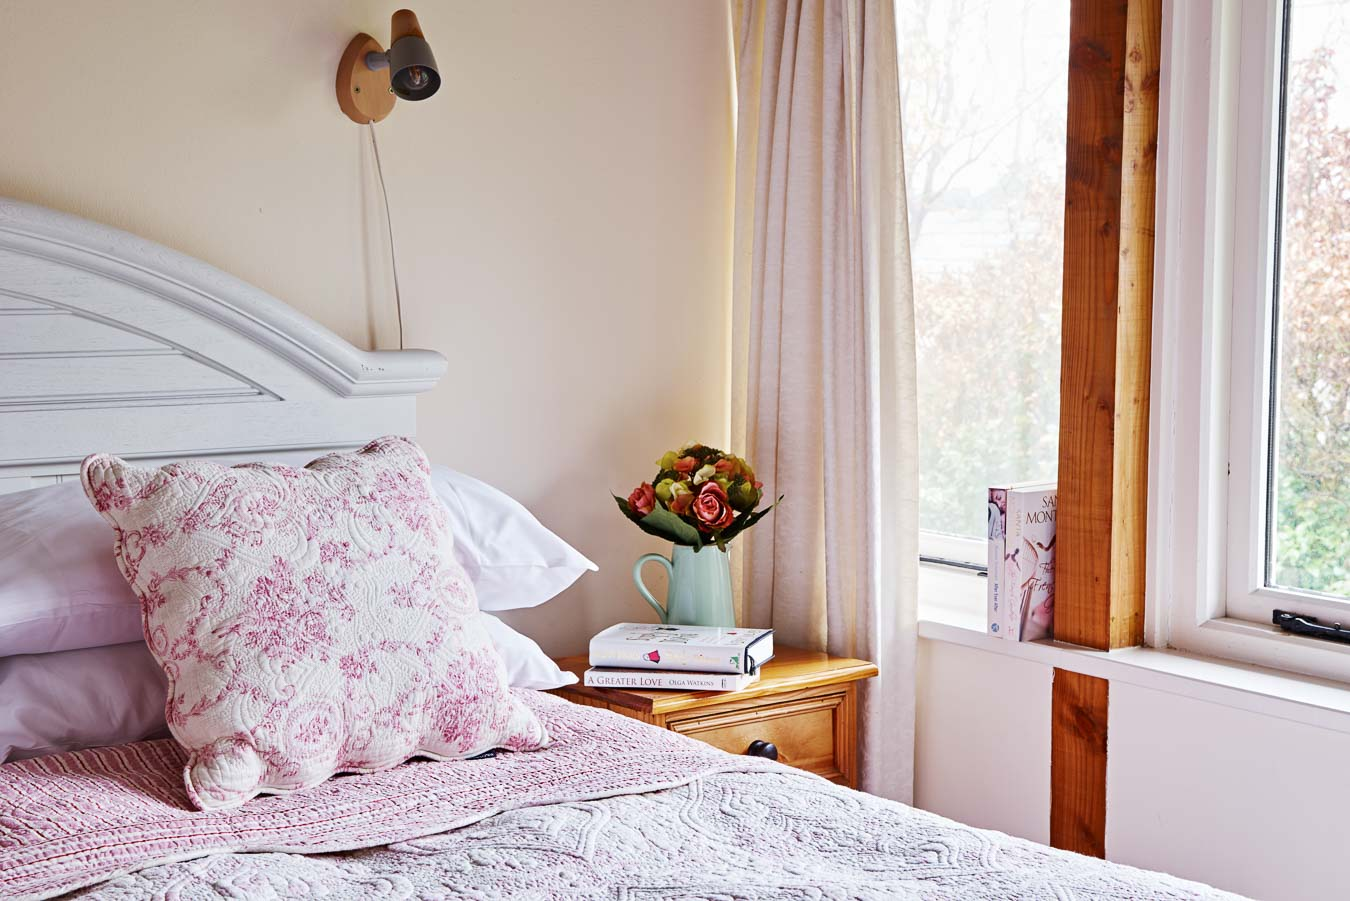 The master bedroom with king size bed in The Linhay cottage Flear Farm. The windows overlook the private garden